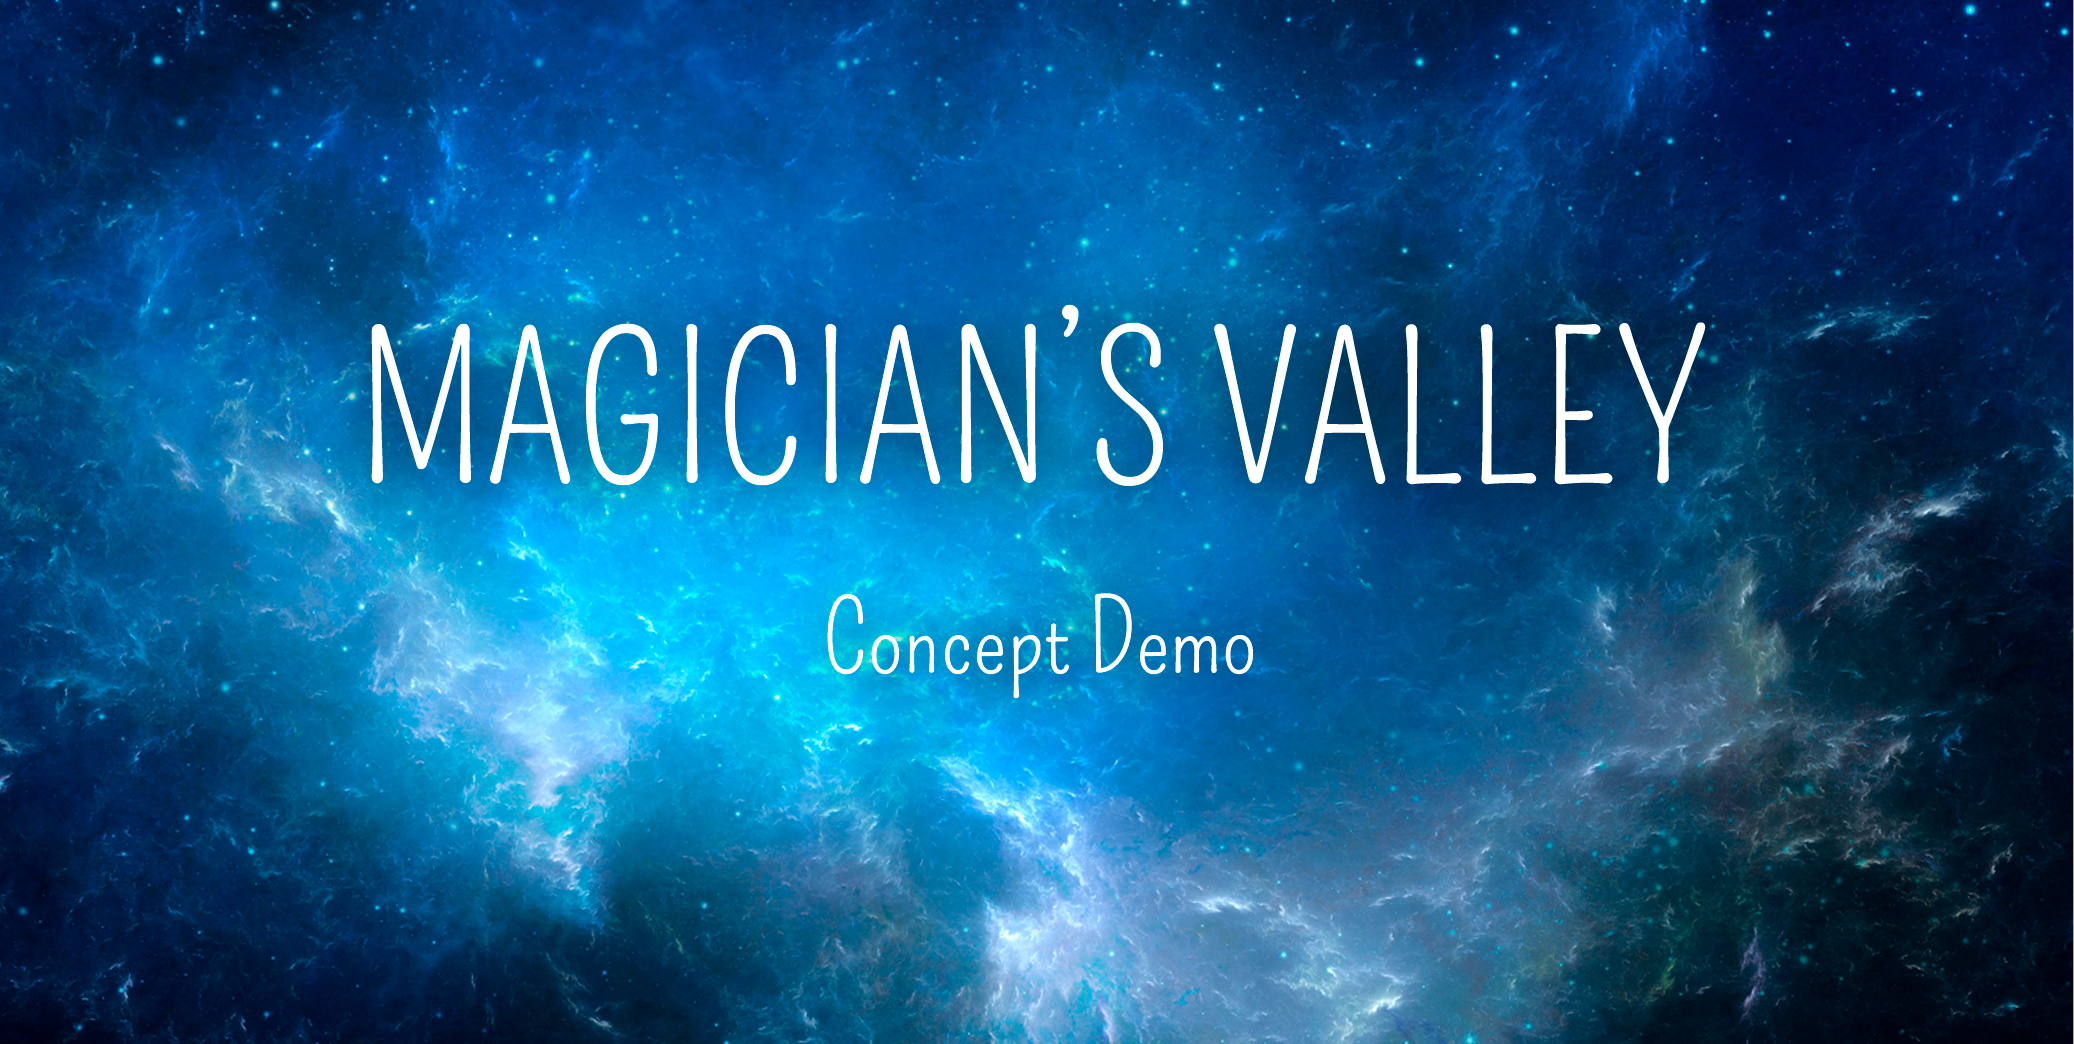 Magician's Valley Concept Demo